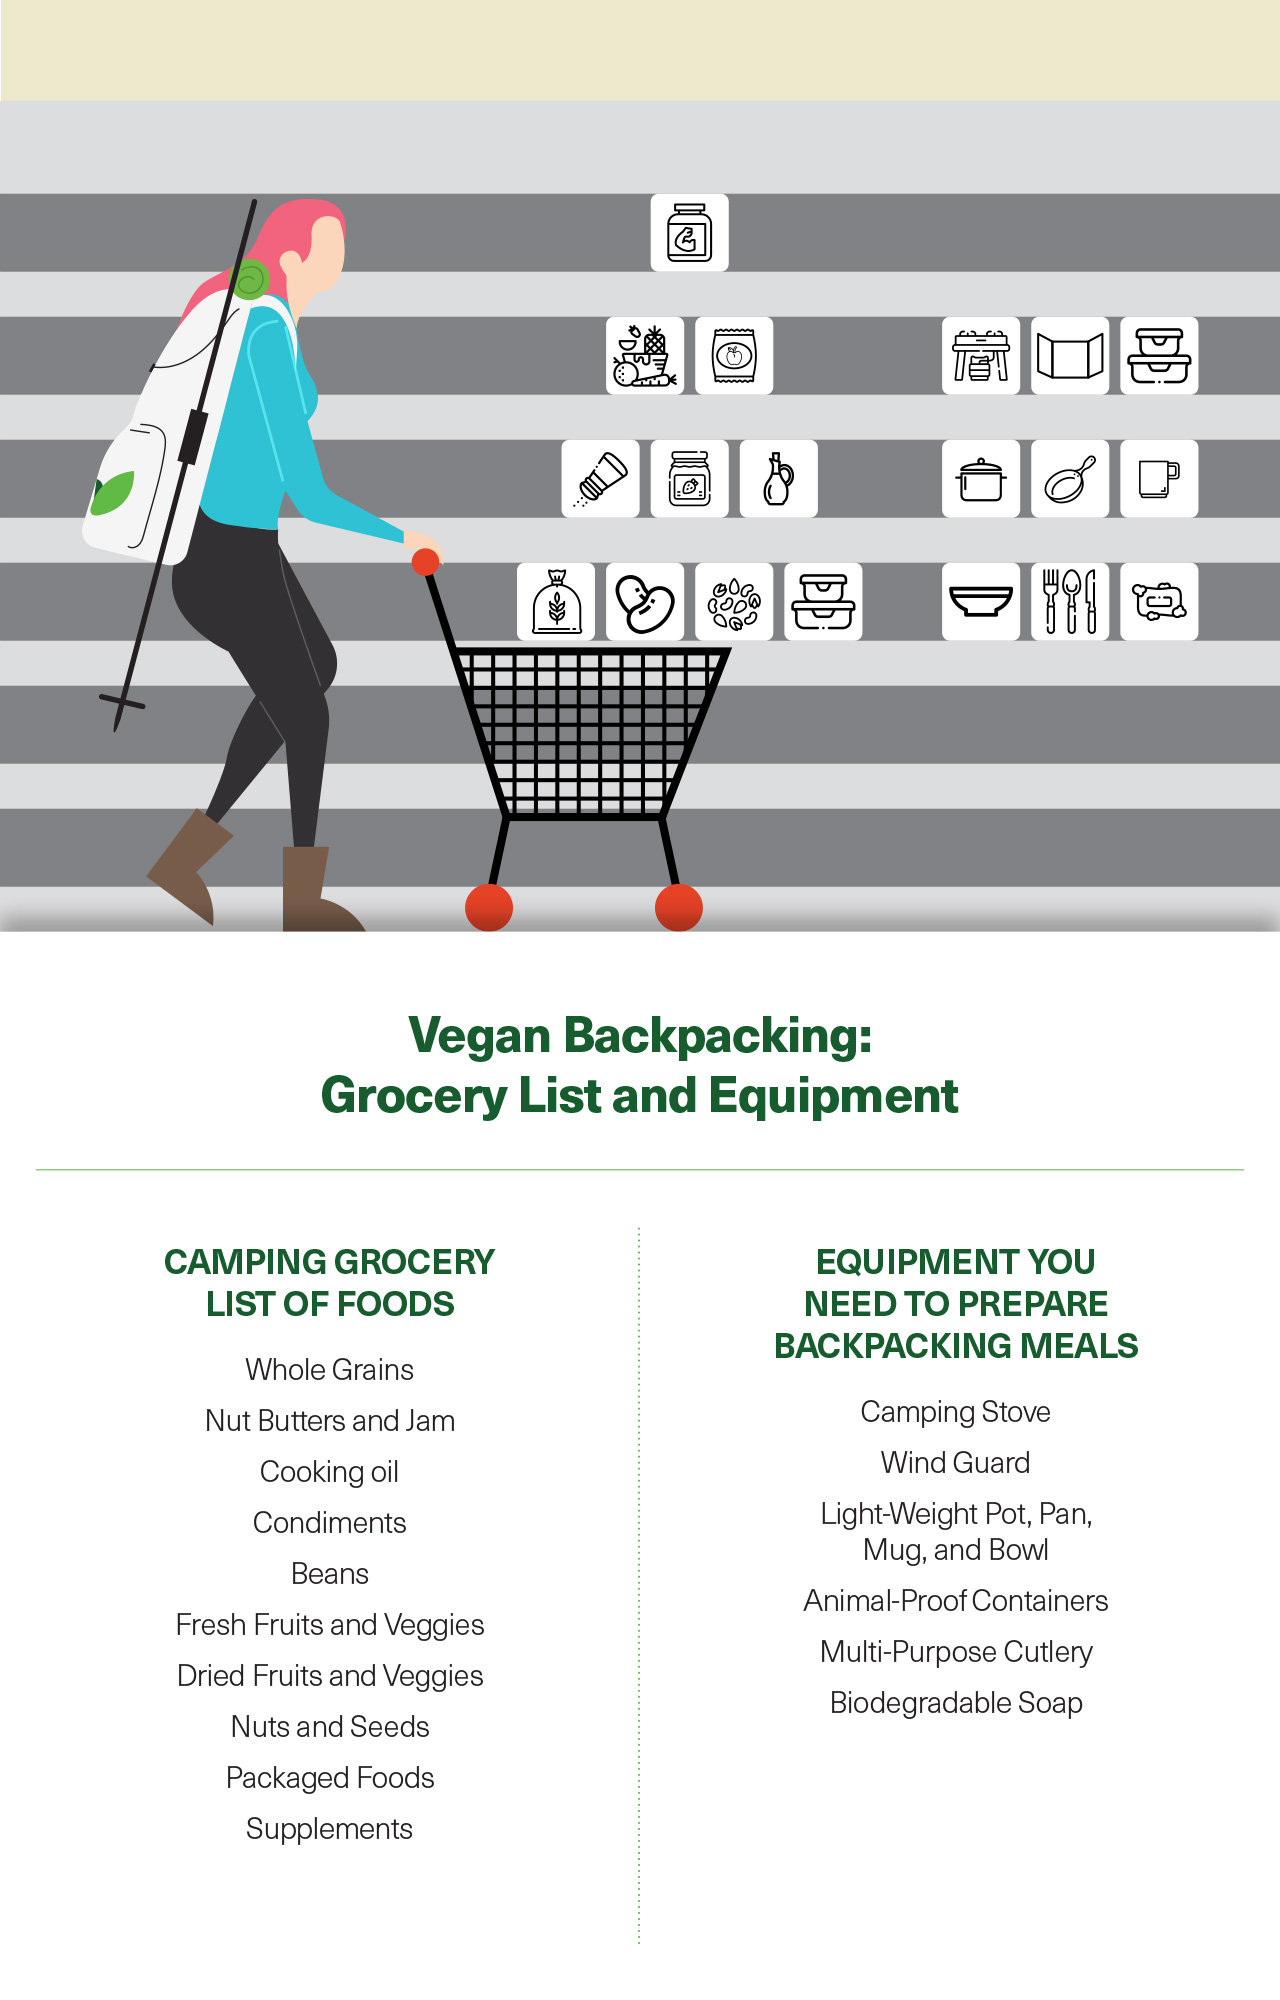 Vegan Backpacking: Grocery List and Equipment